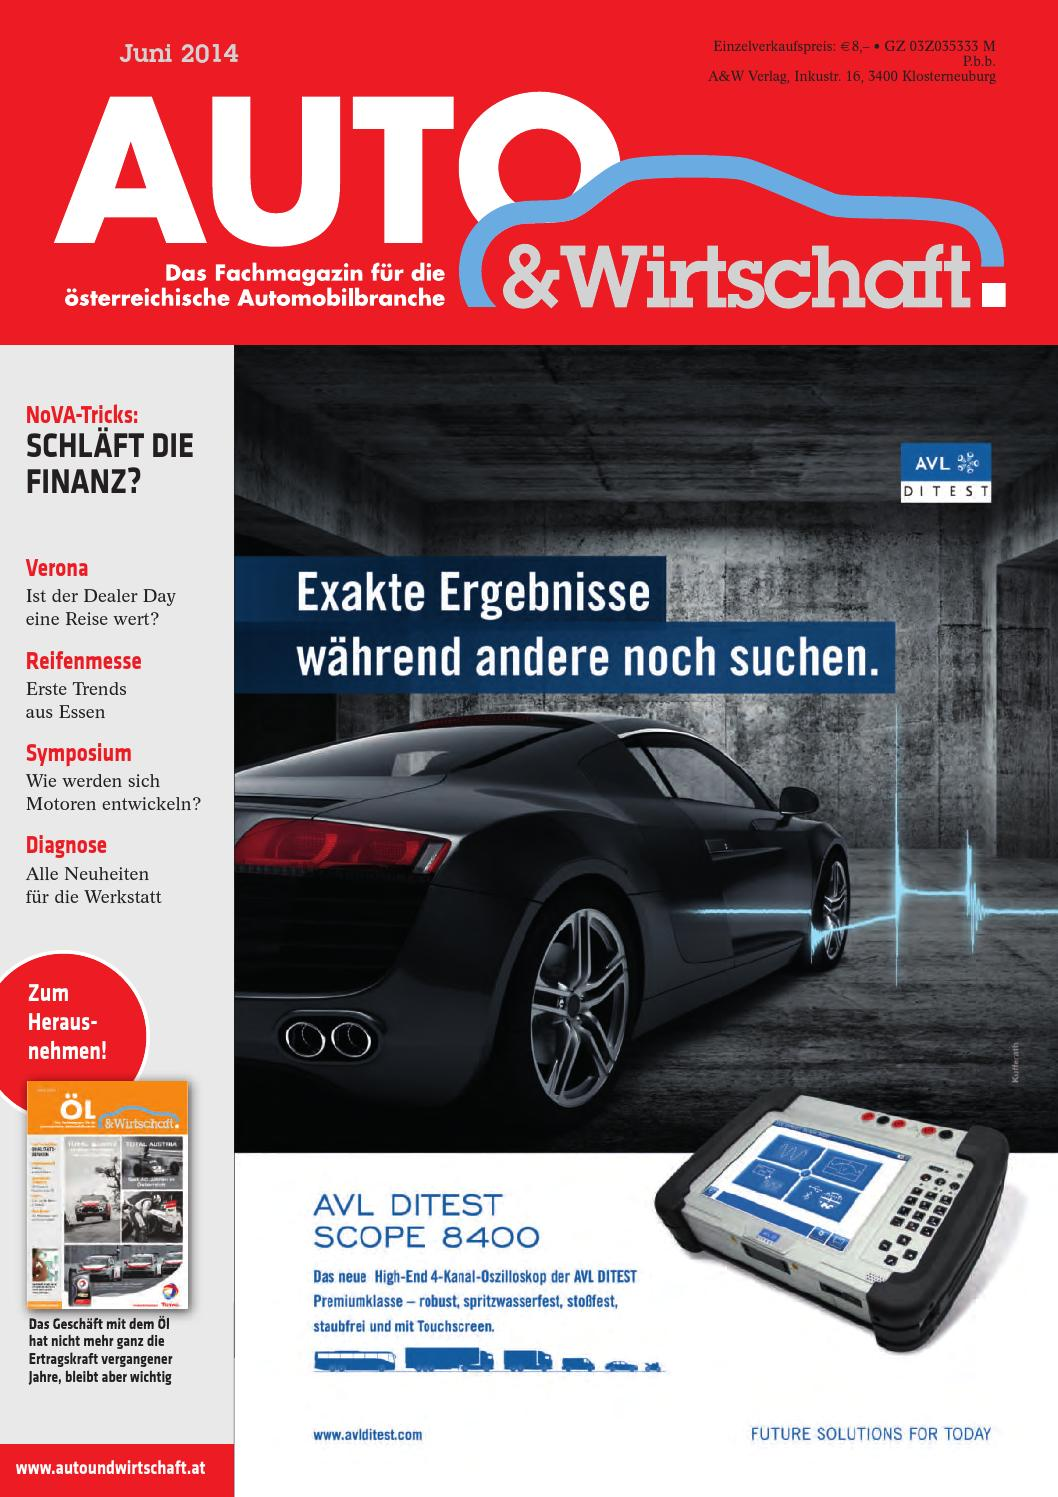 auto wirtschaft 06 2014 by a w verlag gmbh issuu. Black Bedroom Furniture Sets. Home Design Ideas